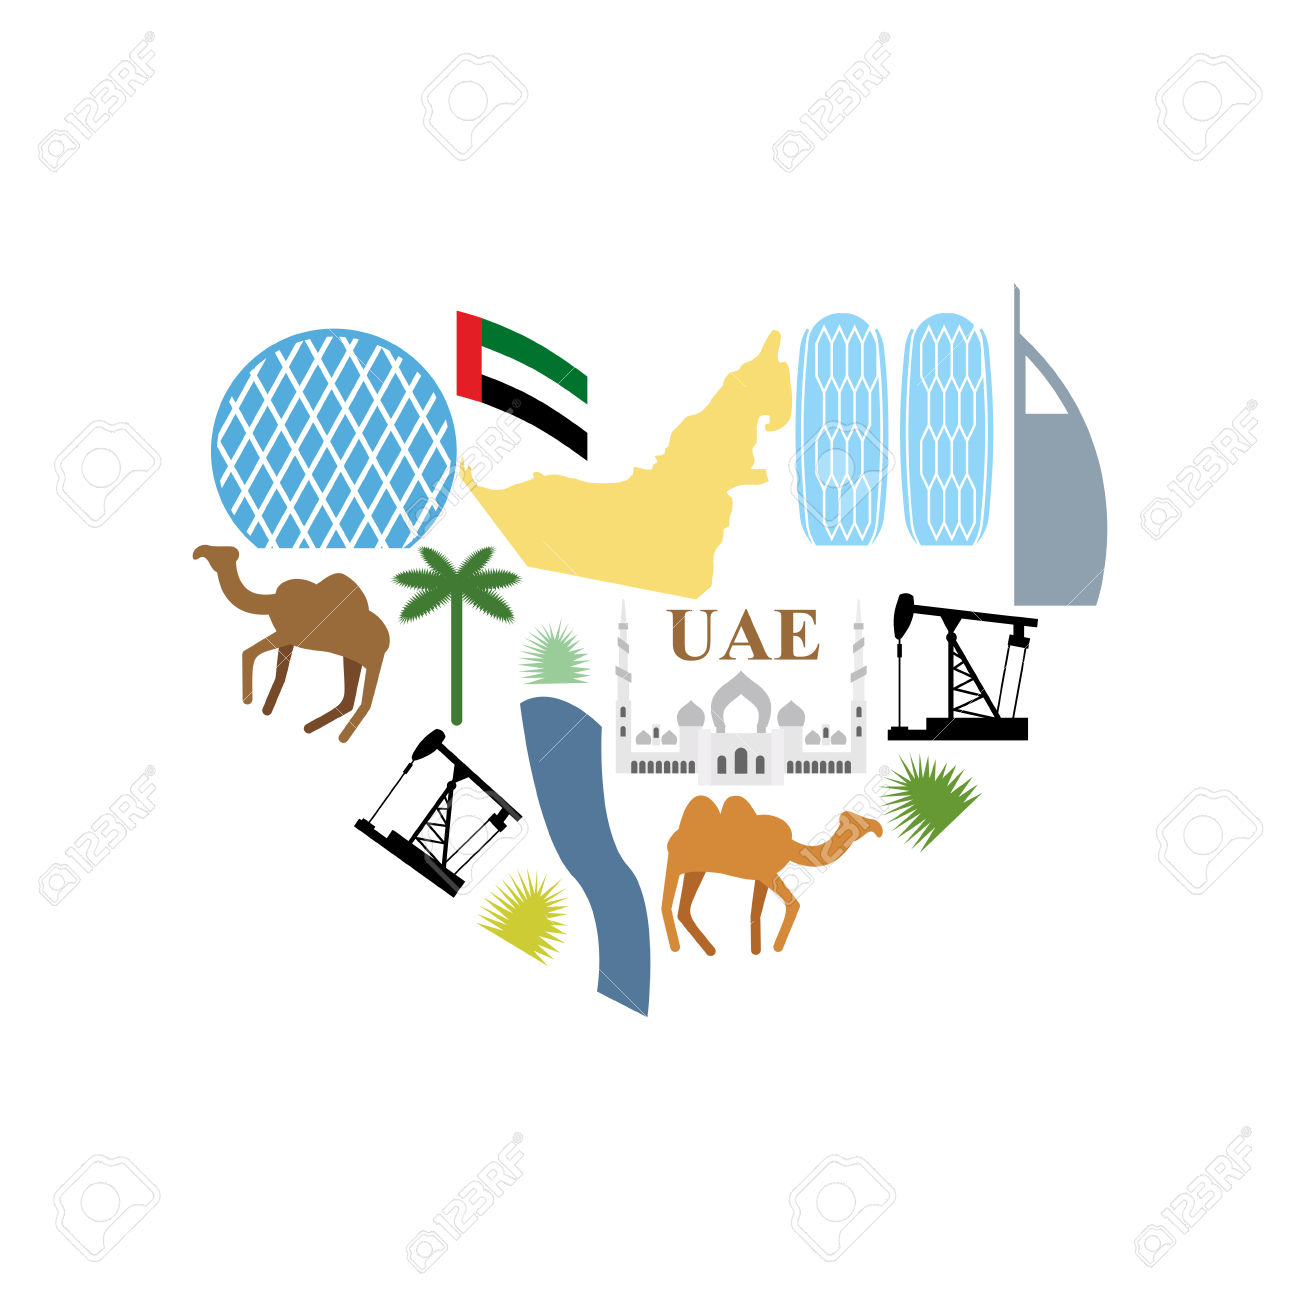 United Arab Emirates clipart #13, Download drawings